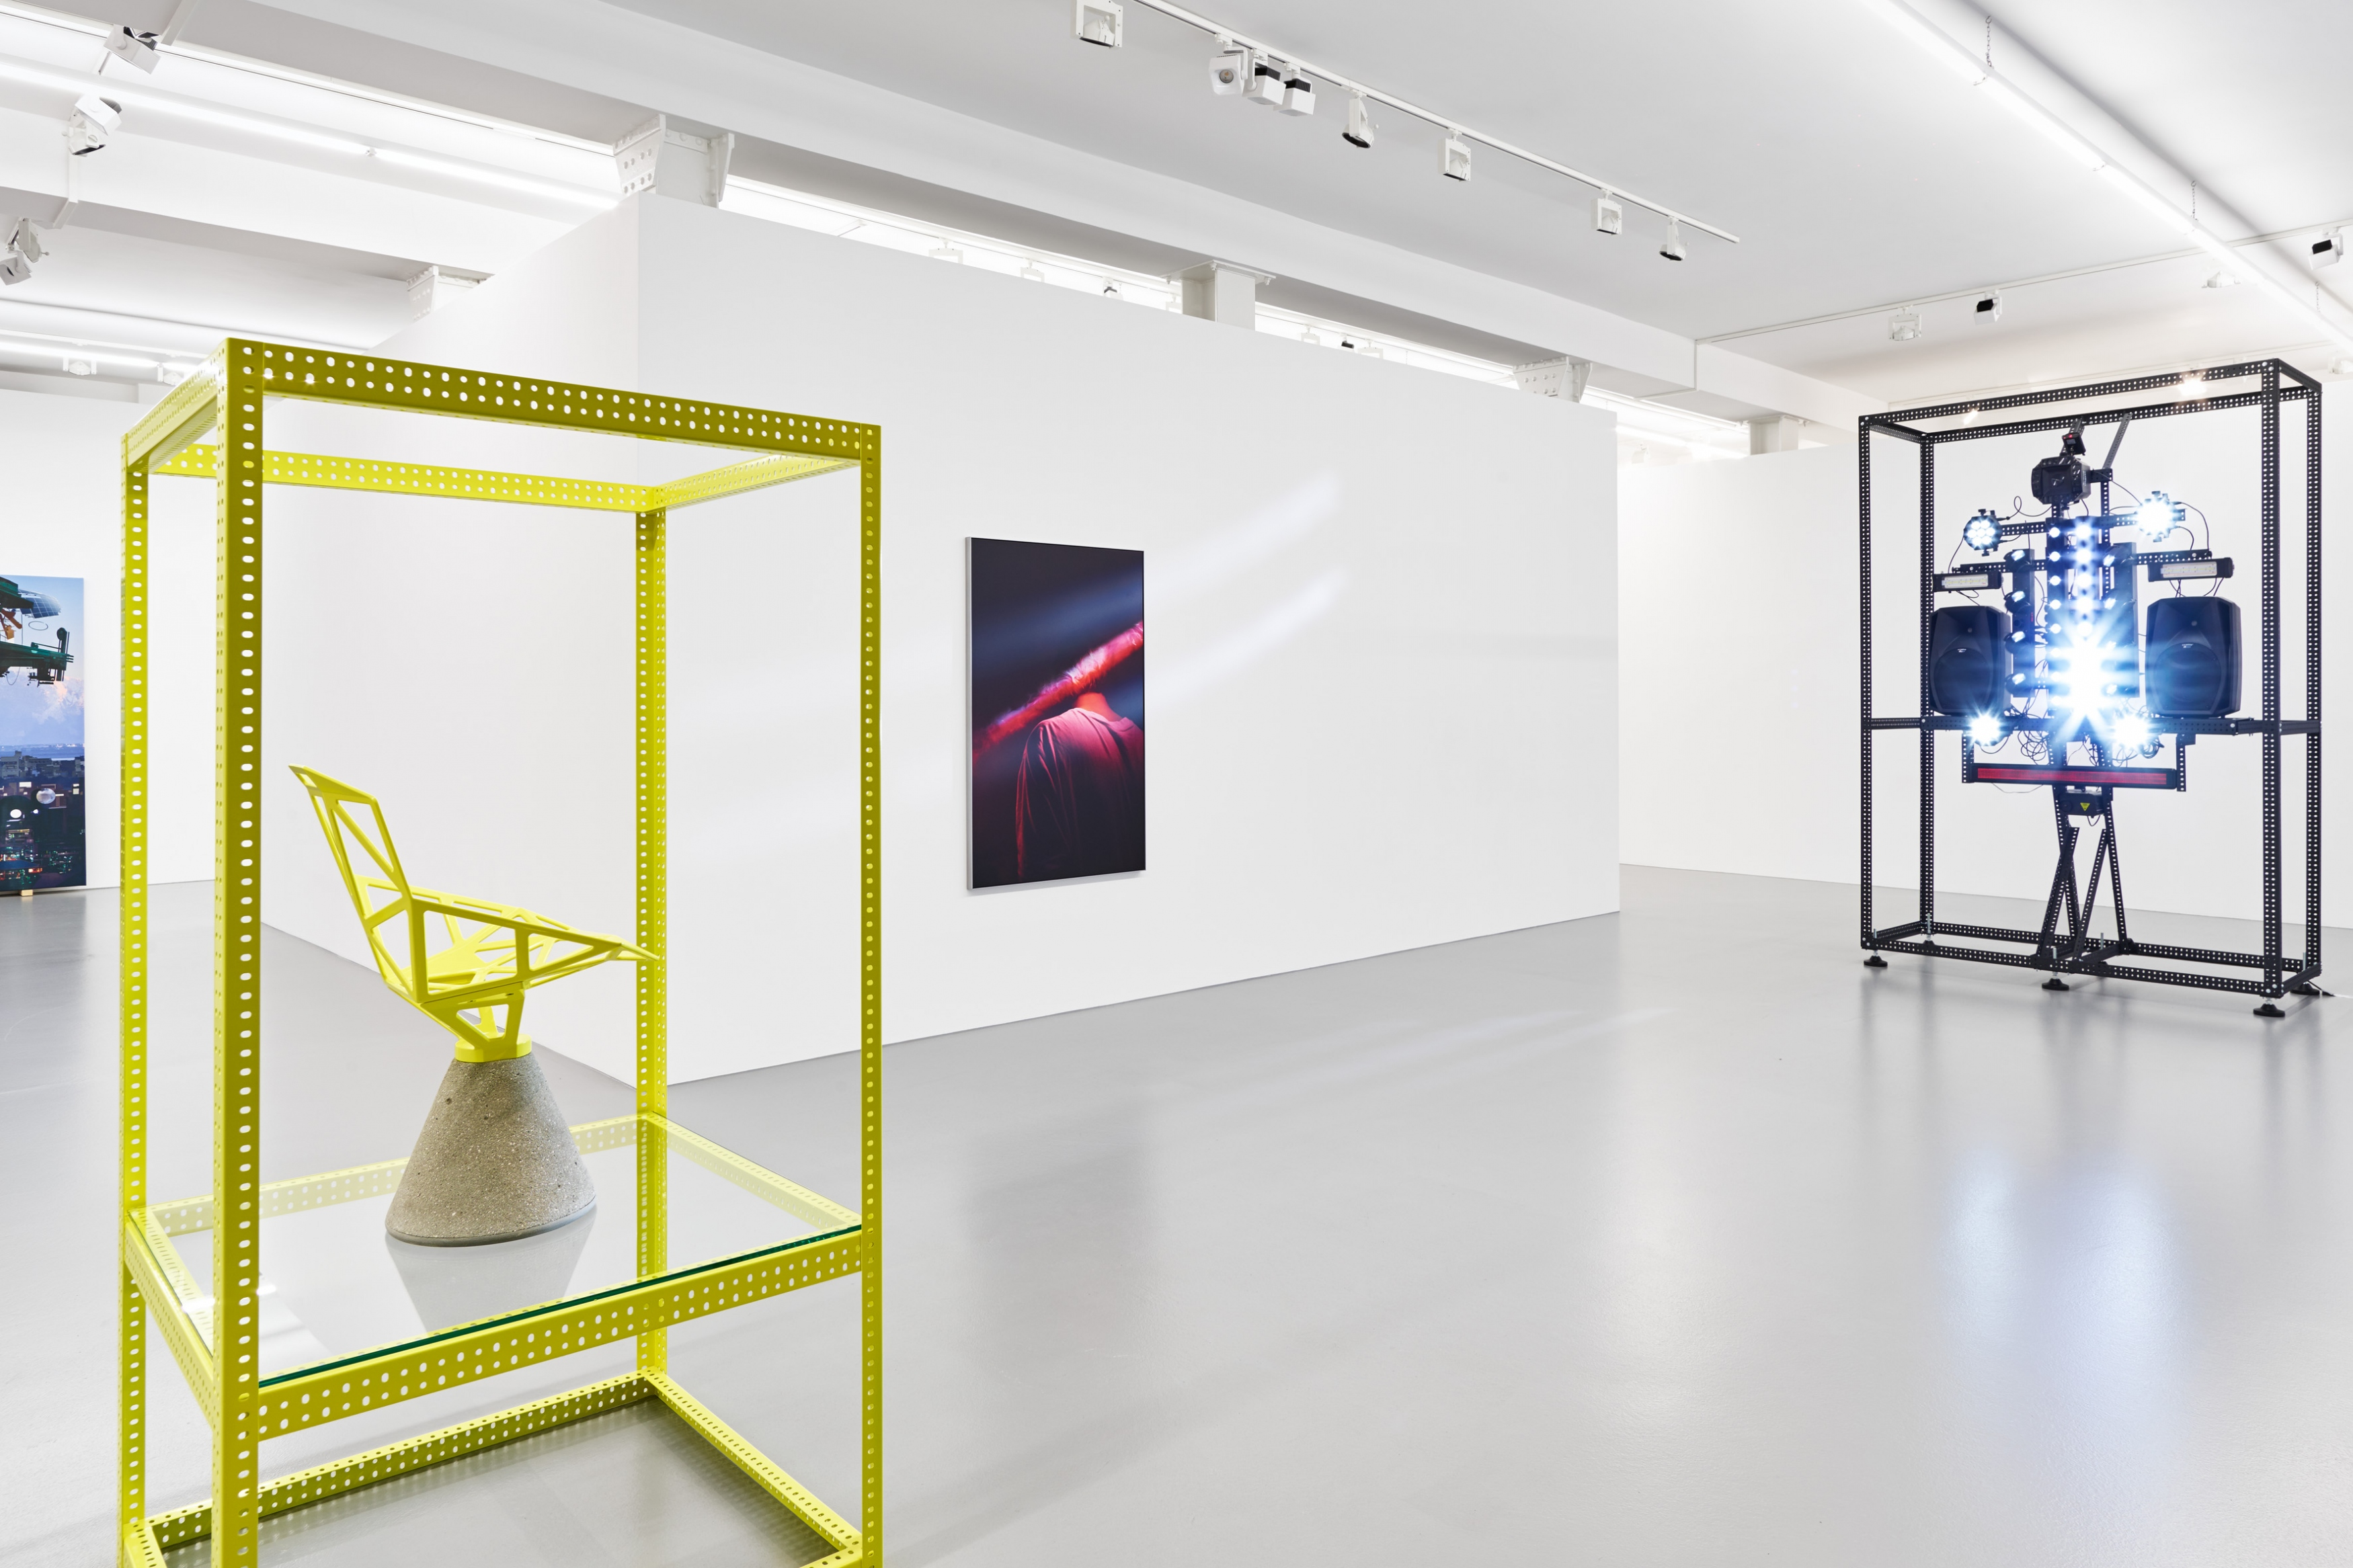 Konstantin Grcic Shows Play Time At Max Hetzler Gallery